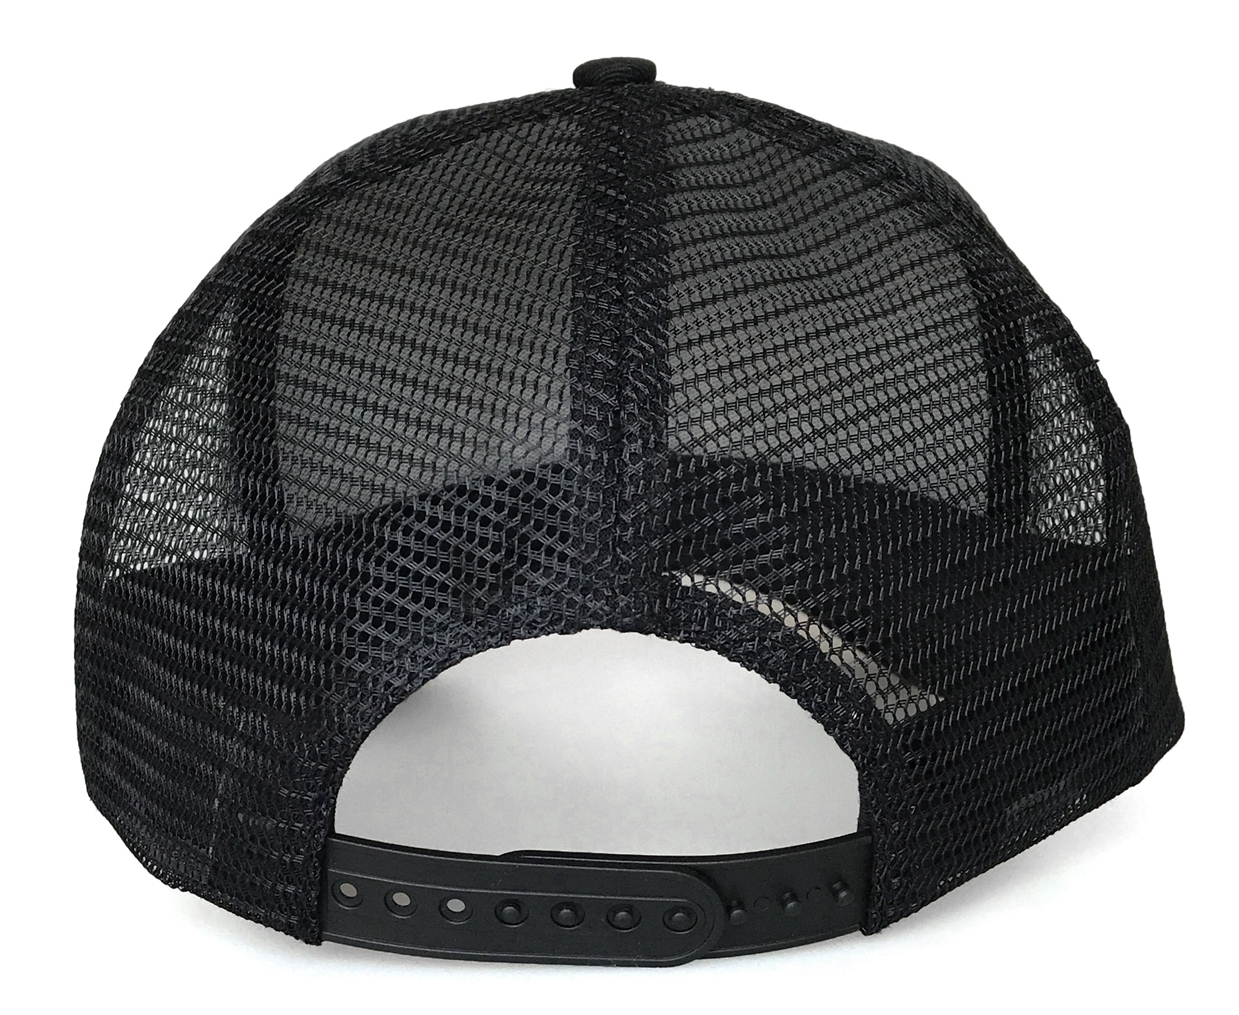 Popular 3D embroidery black 5 panel style trucker hat